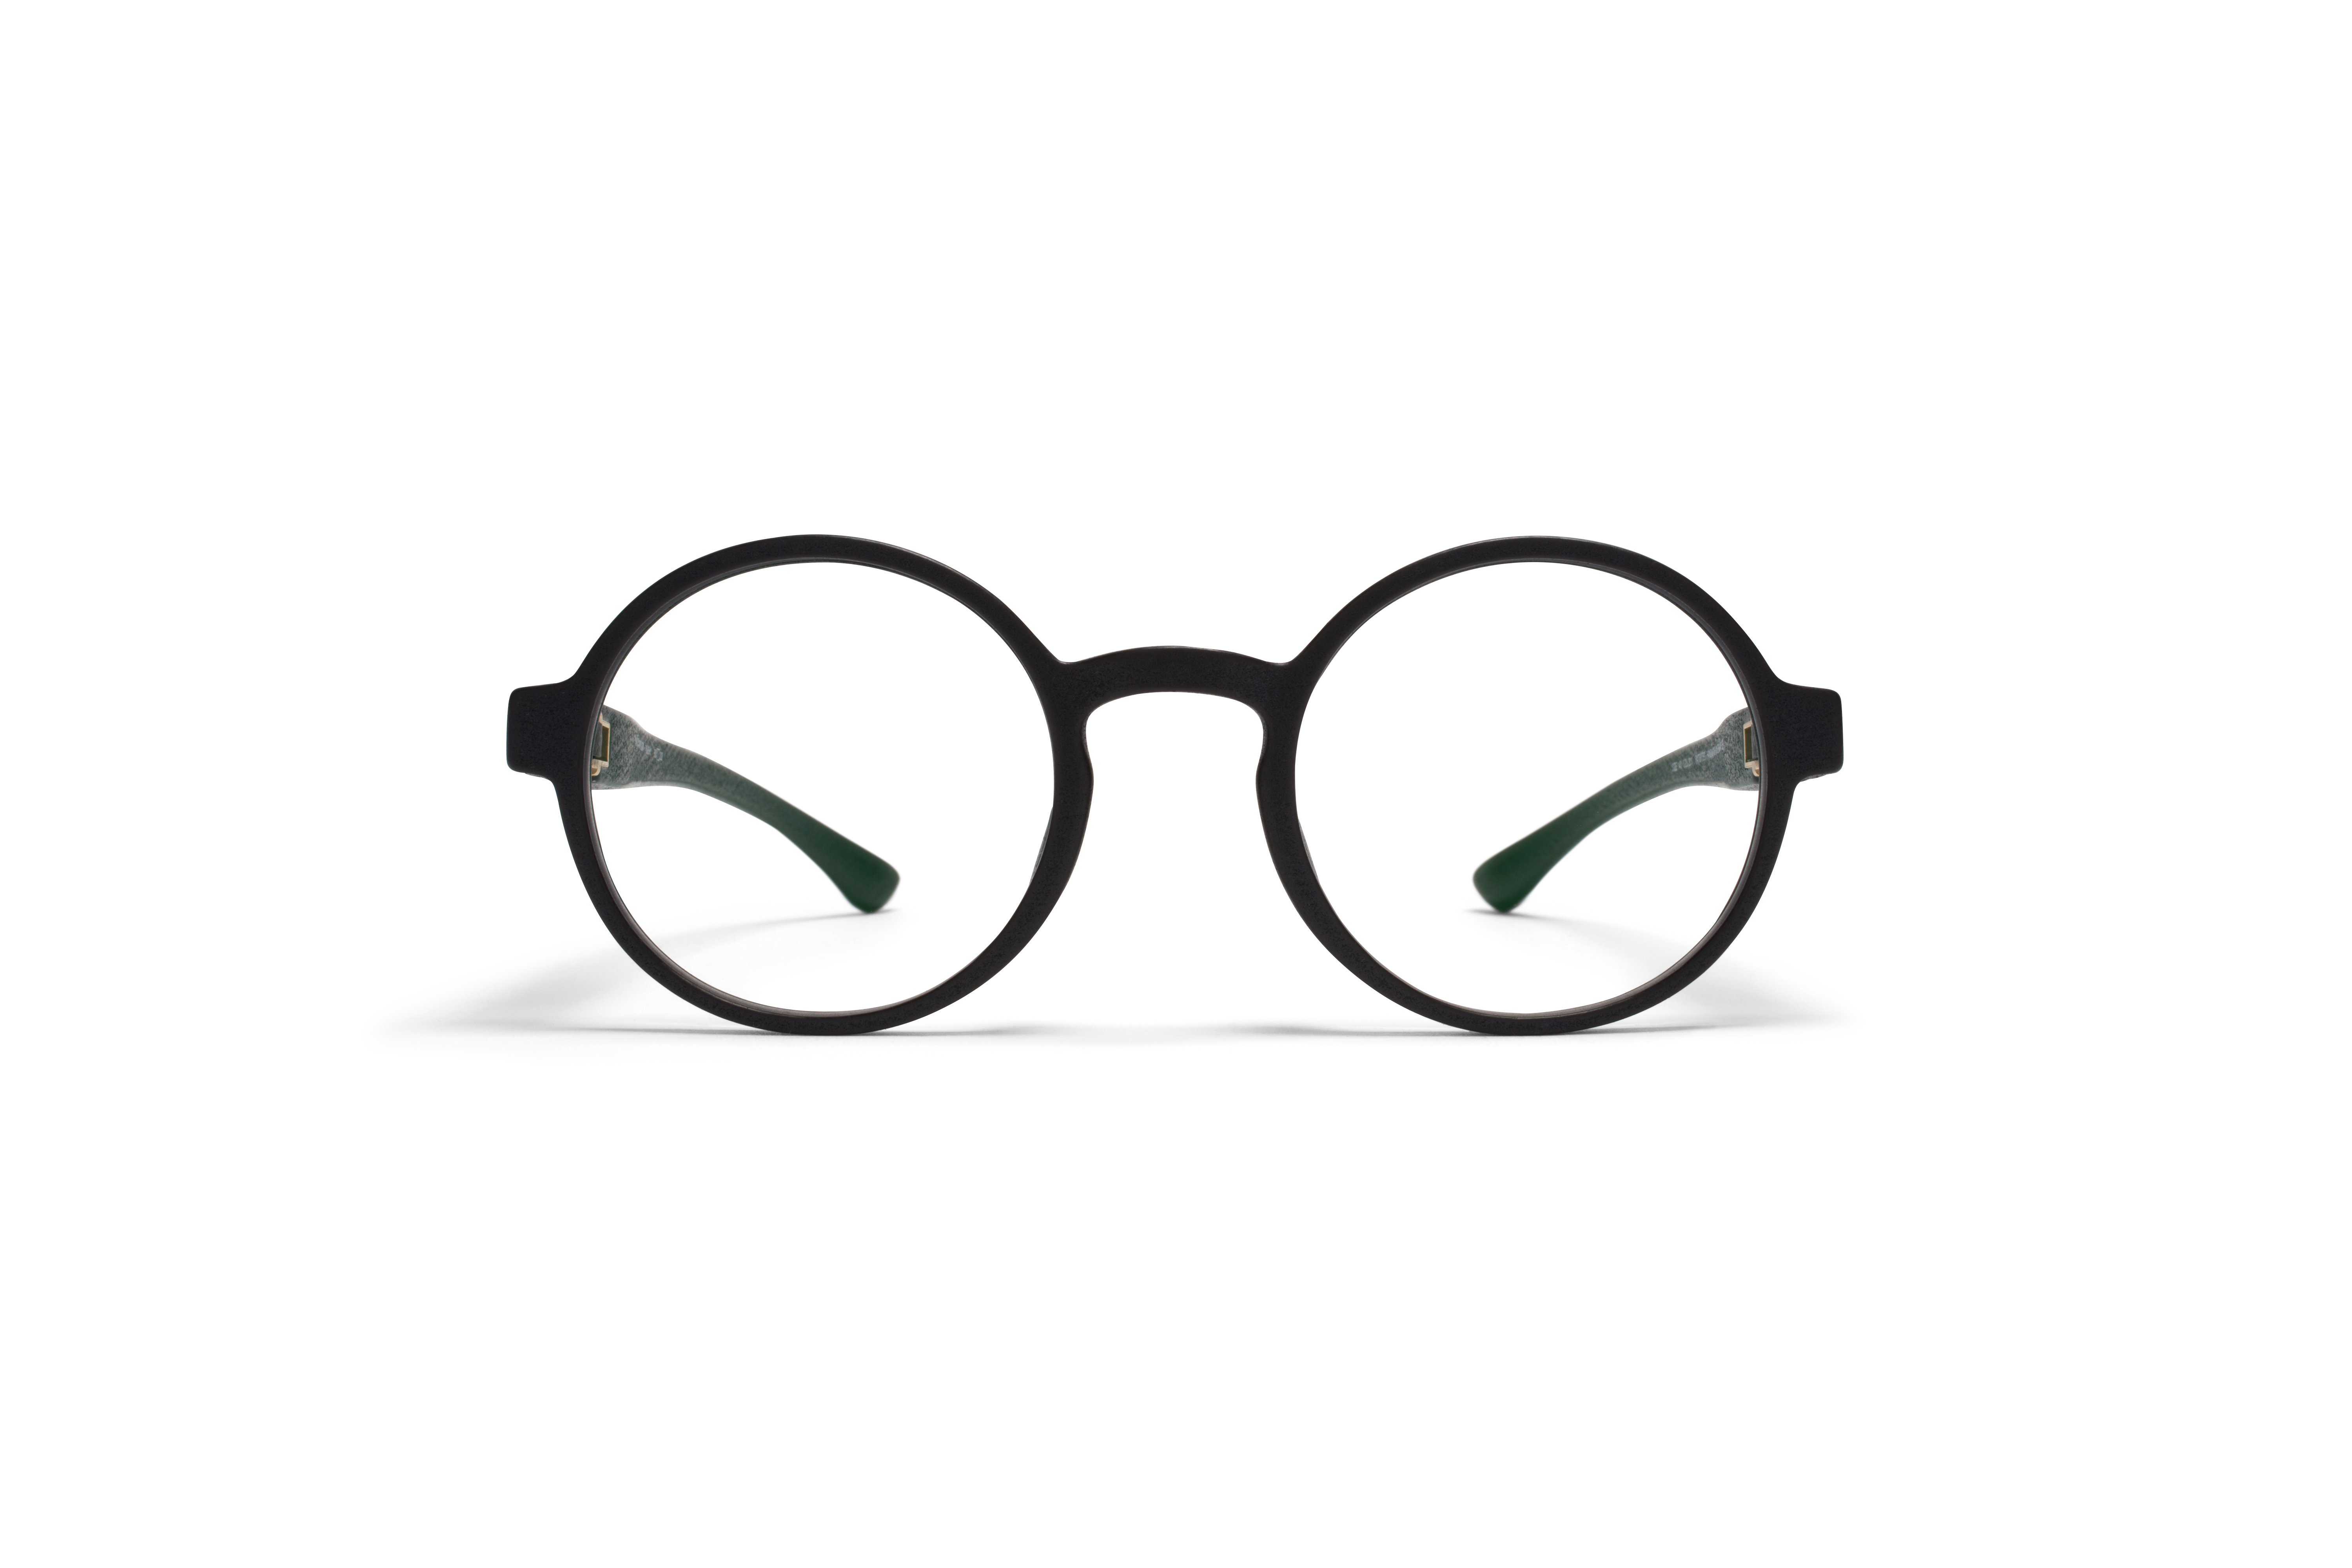 Mykita Mylon Rx Yoshy Md1 Pitch Black Clear 3502225707c4fe524f1